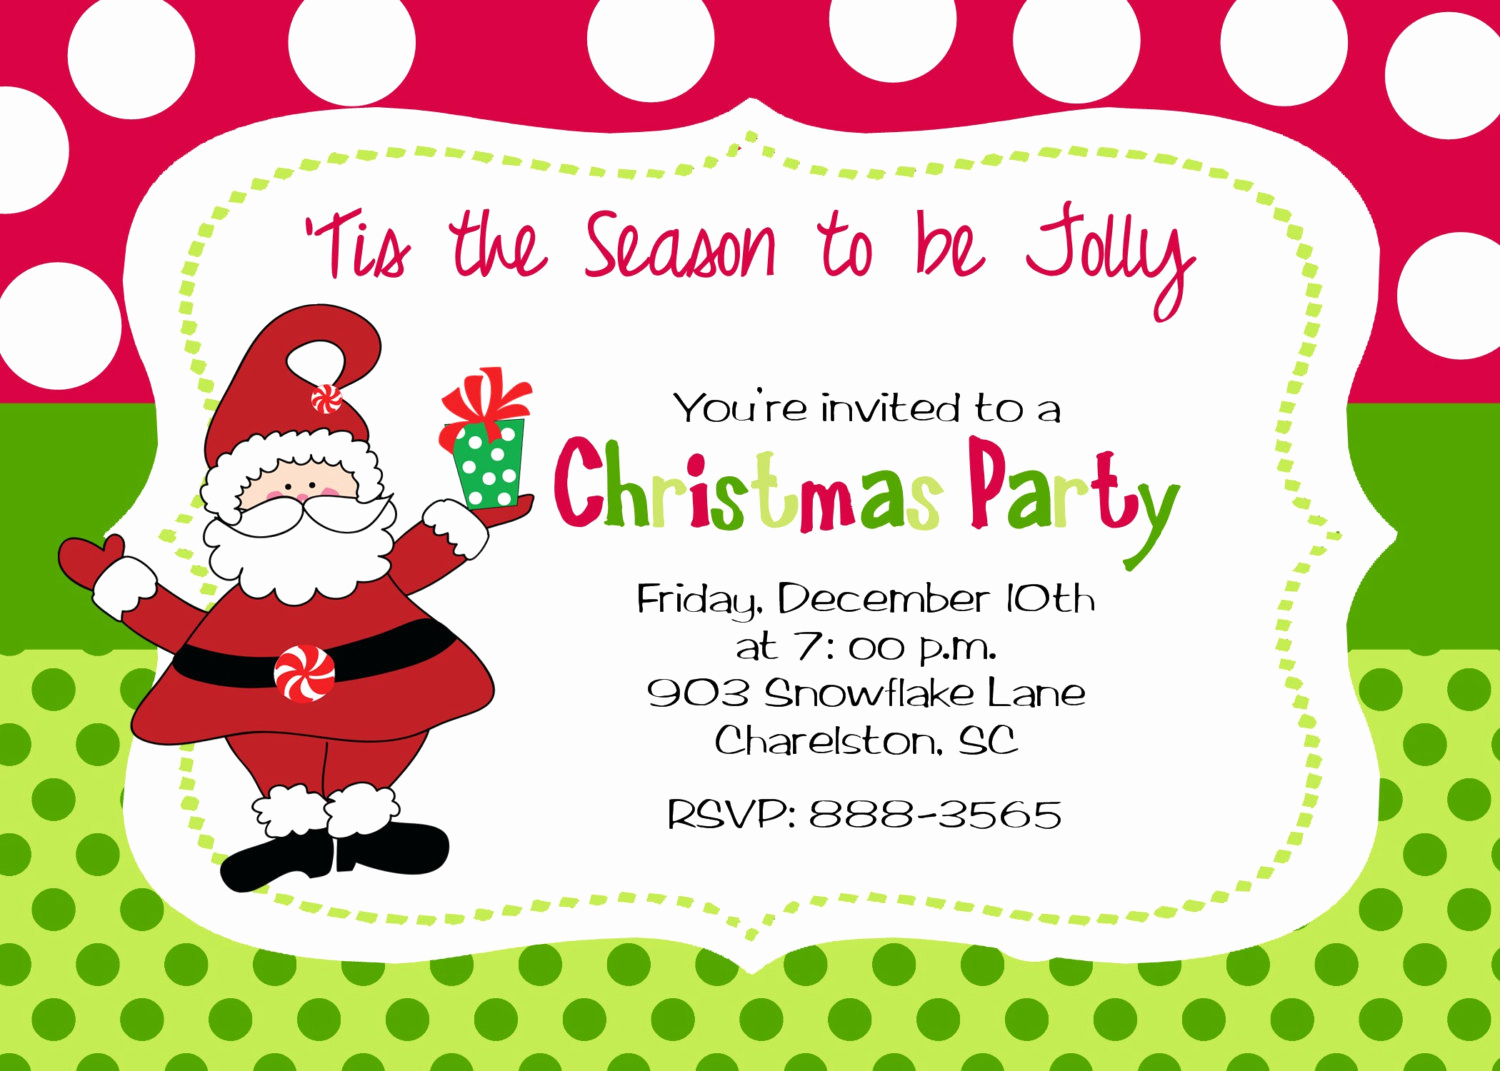 Holiday Party Invitation Template Beautiful Christmas Party Invitation